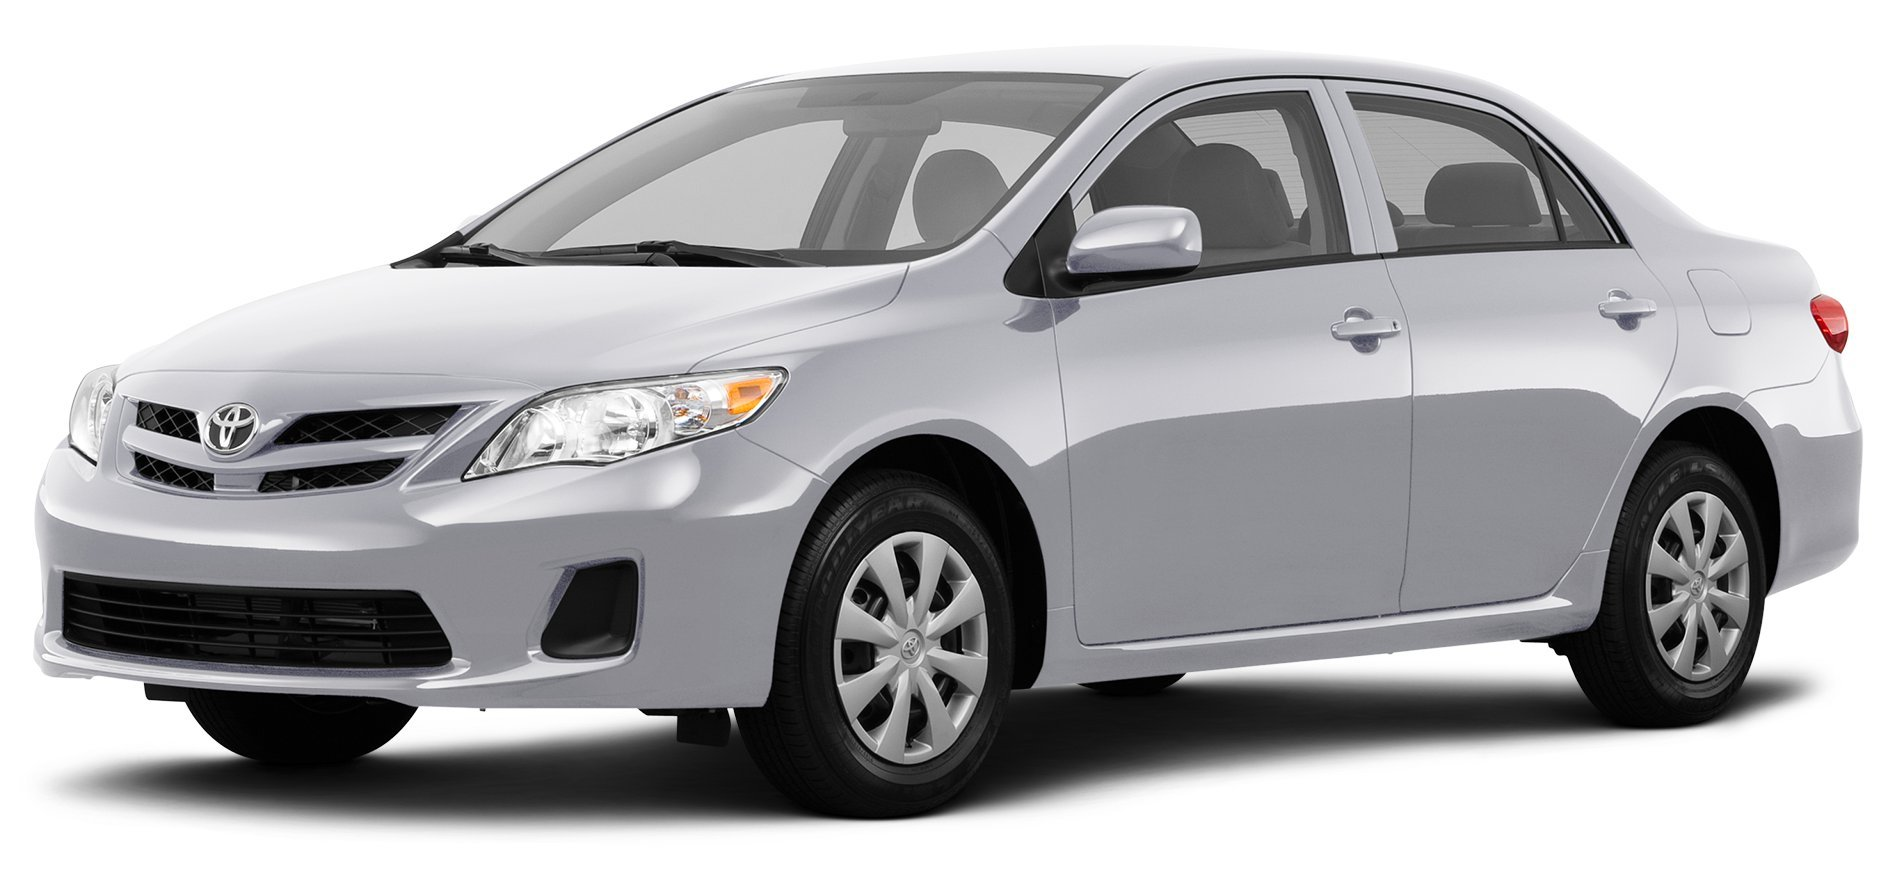 Amazon 2013 nissan sentra reviews images and specs vehicles 2013 toyota corolla l 4 door sedan automatic transmission natl vanachro Image collections